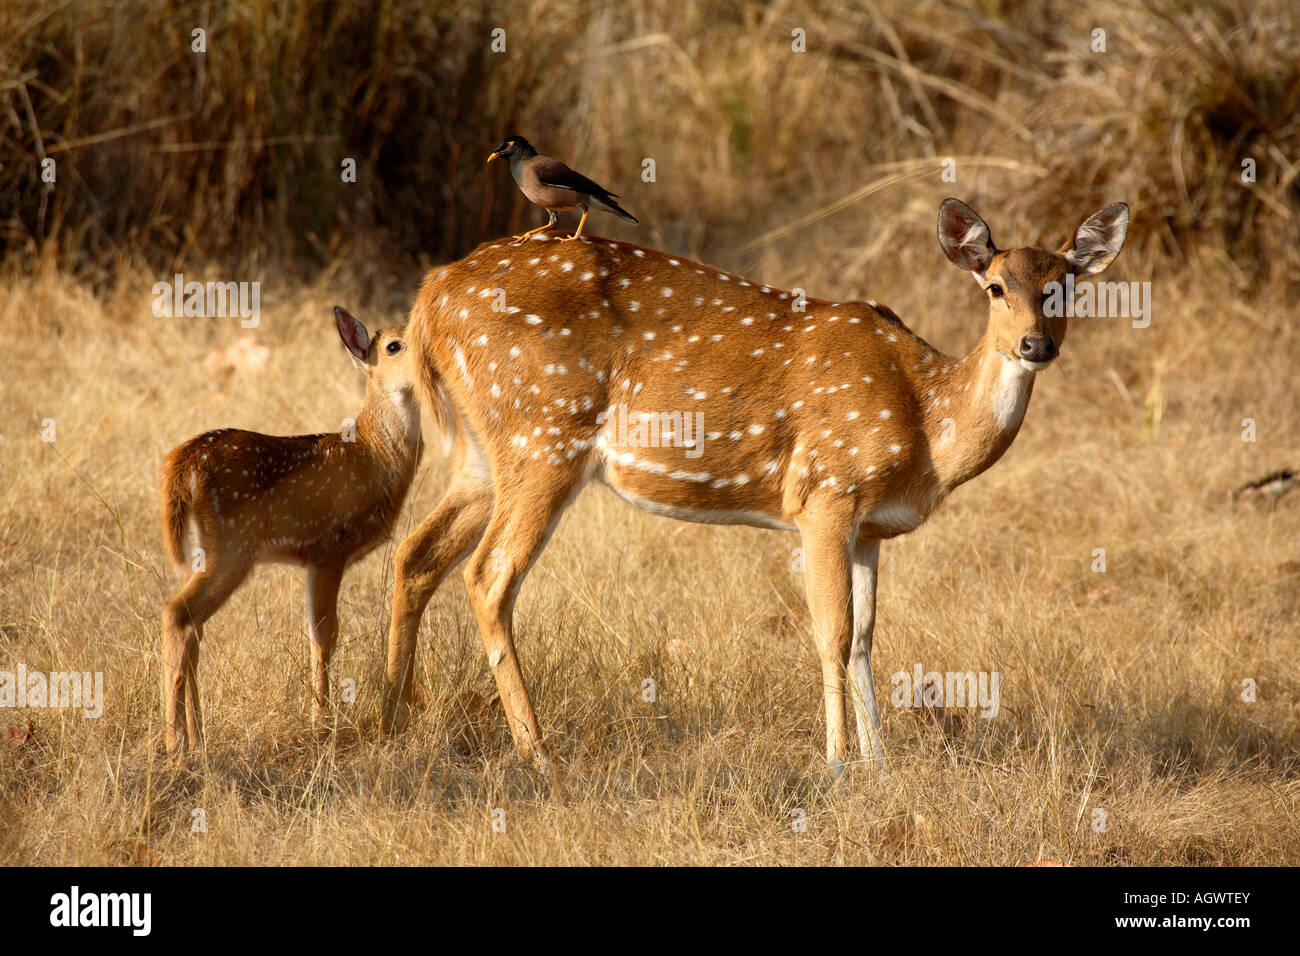 L'Inde Parc national de Kanha kanha tiger réserver chital cerf axis Axis axis cerf tacheté indien Photo Stock